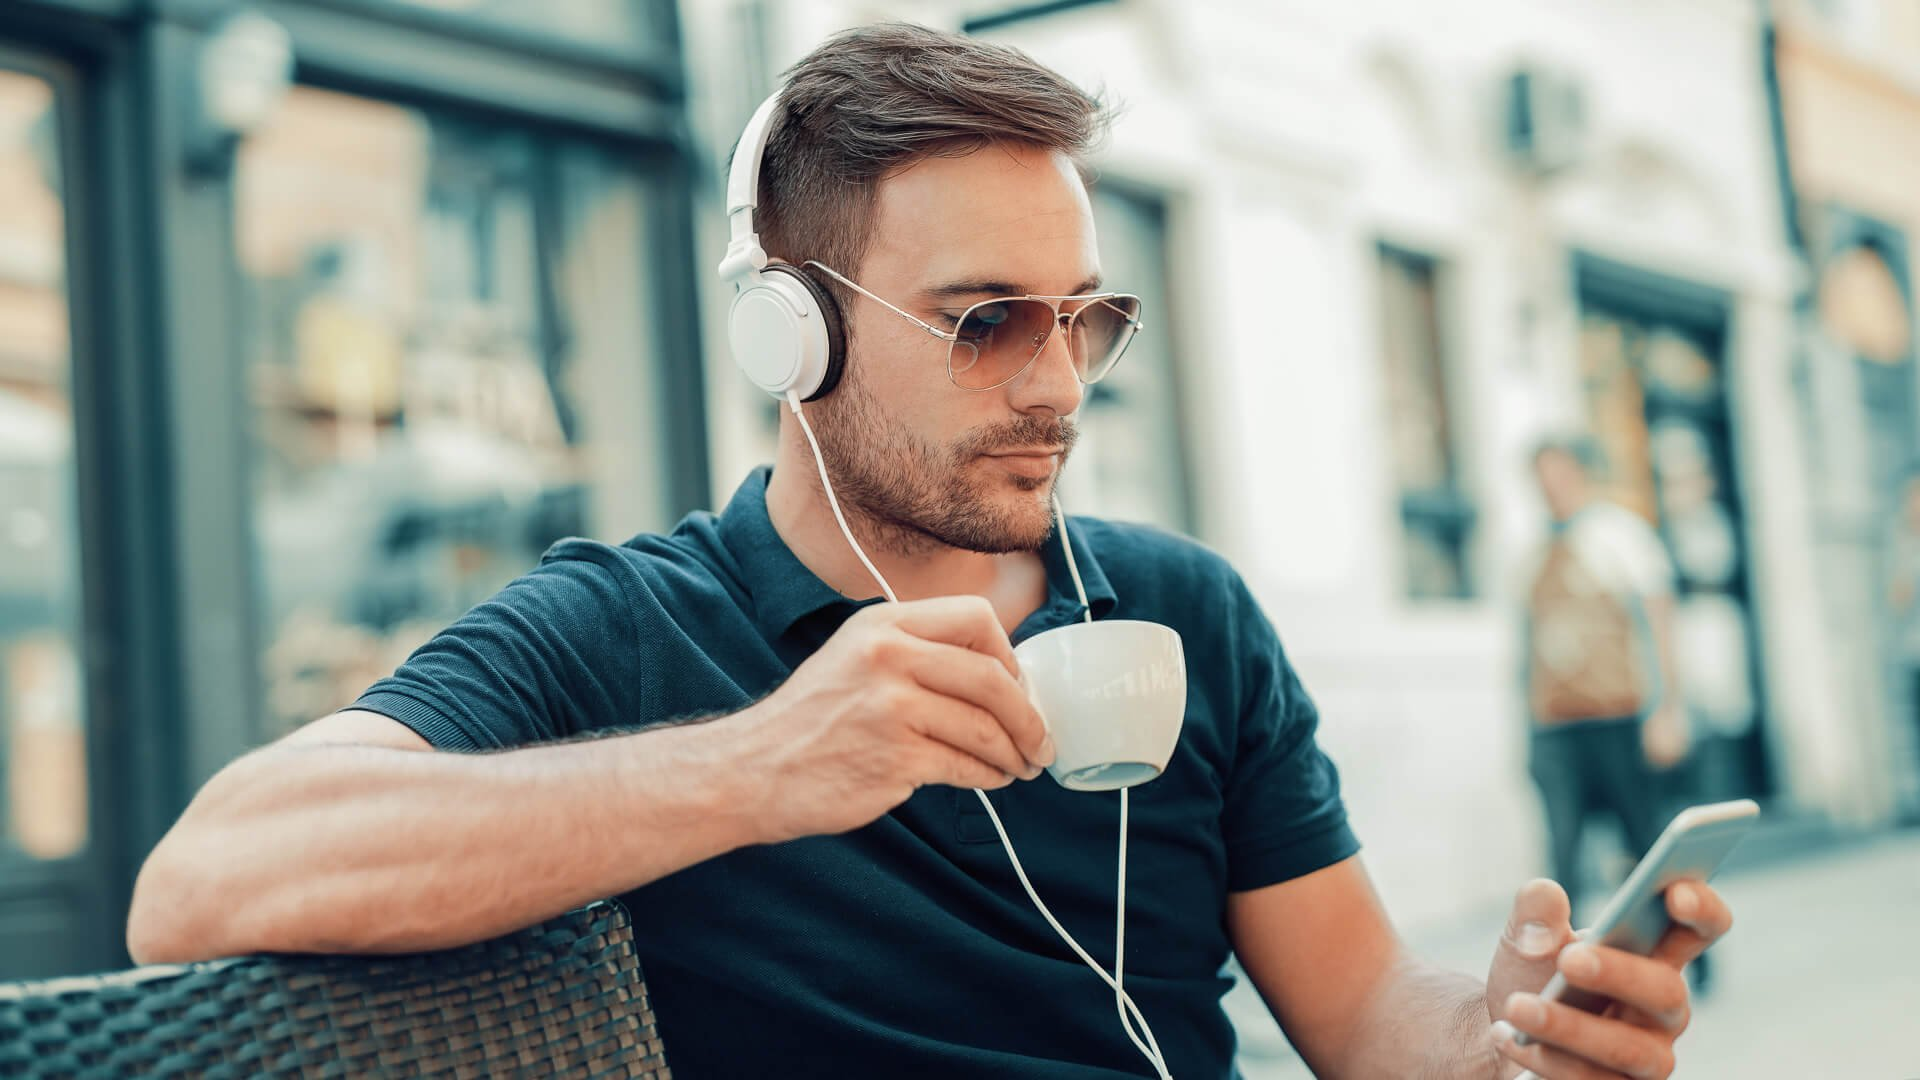 Top Podcasts: What Are People Listening To for Money Advice?